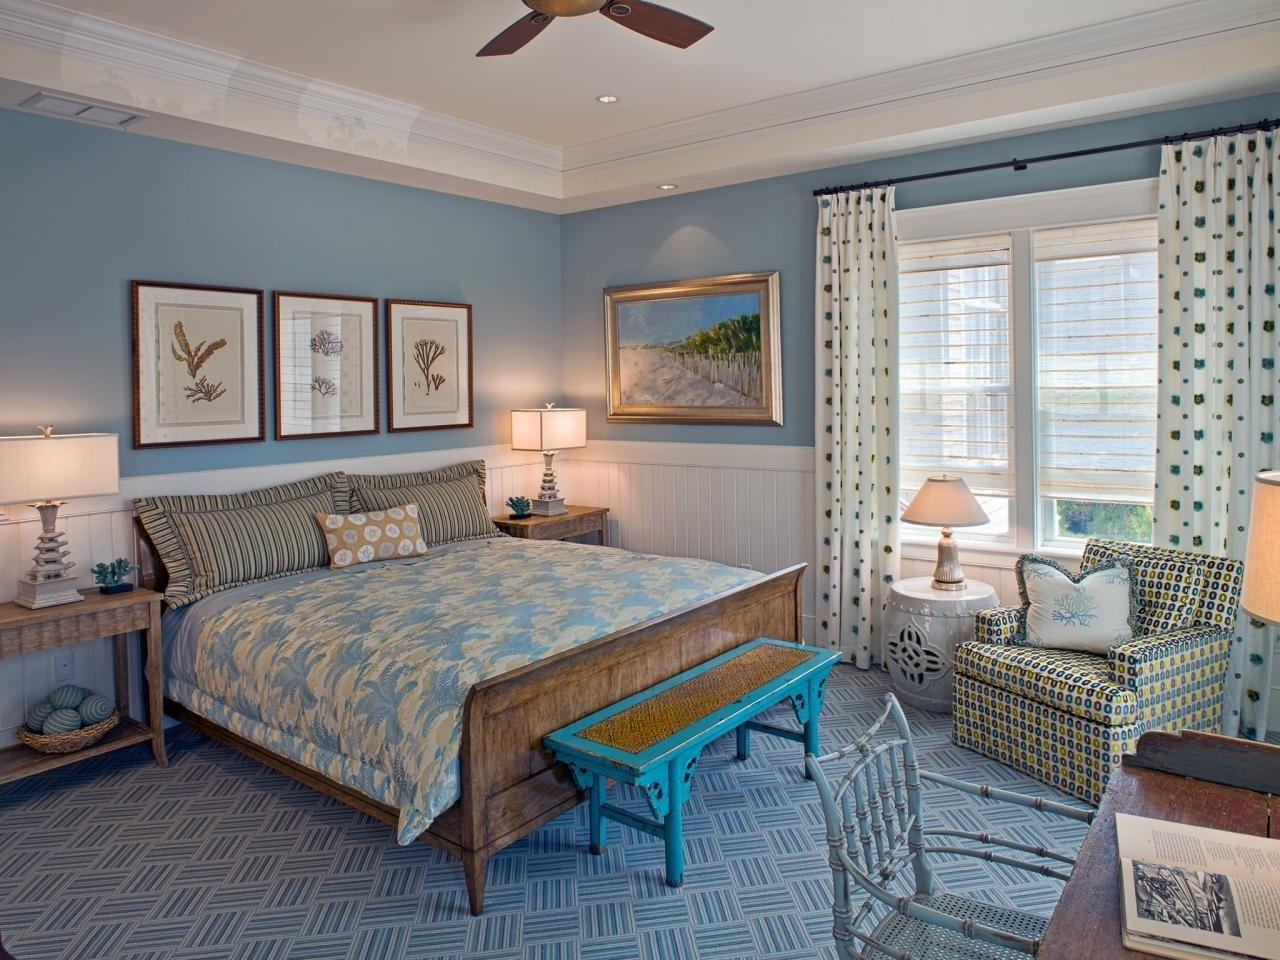 10 Cute Ideas For Painting A Room bedroom bedroom color palette ideas paint combination for bedroom 2020